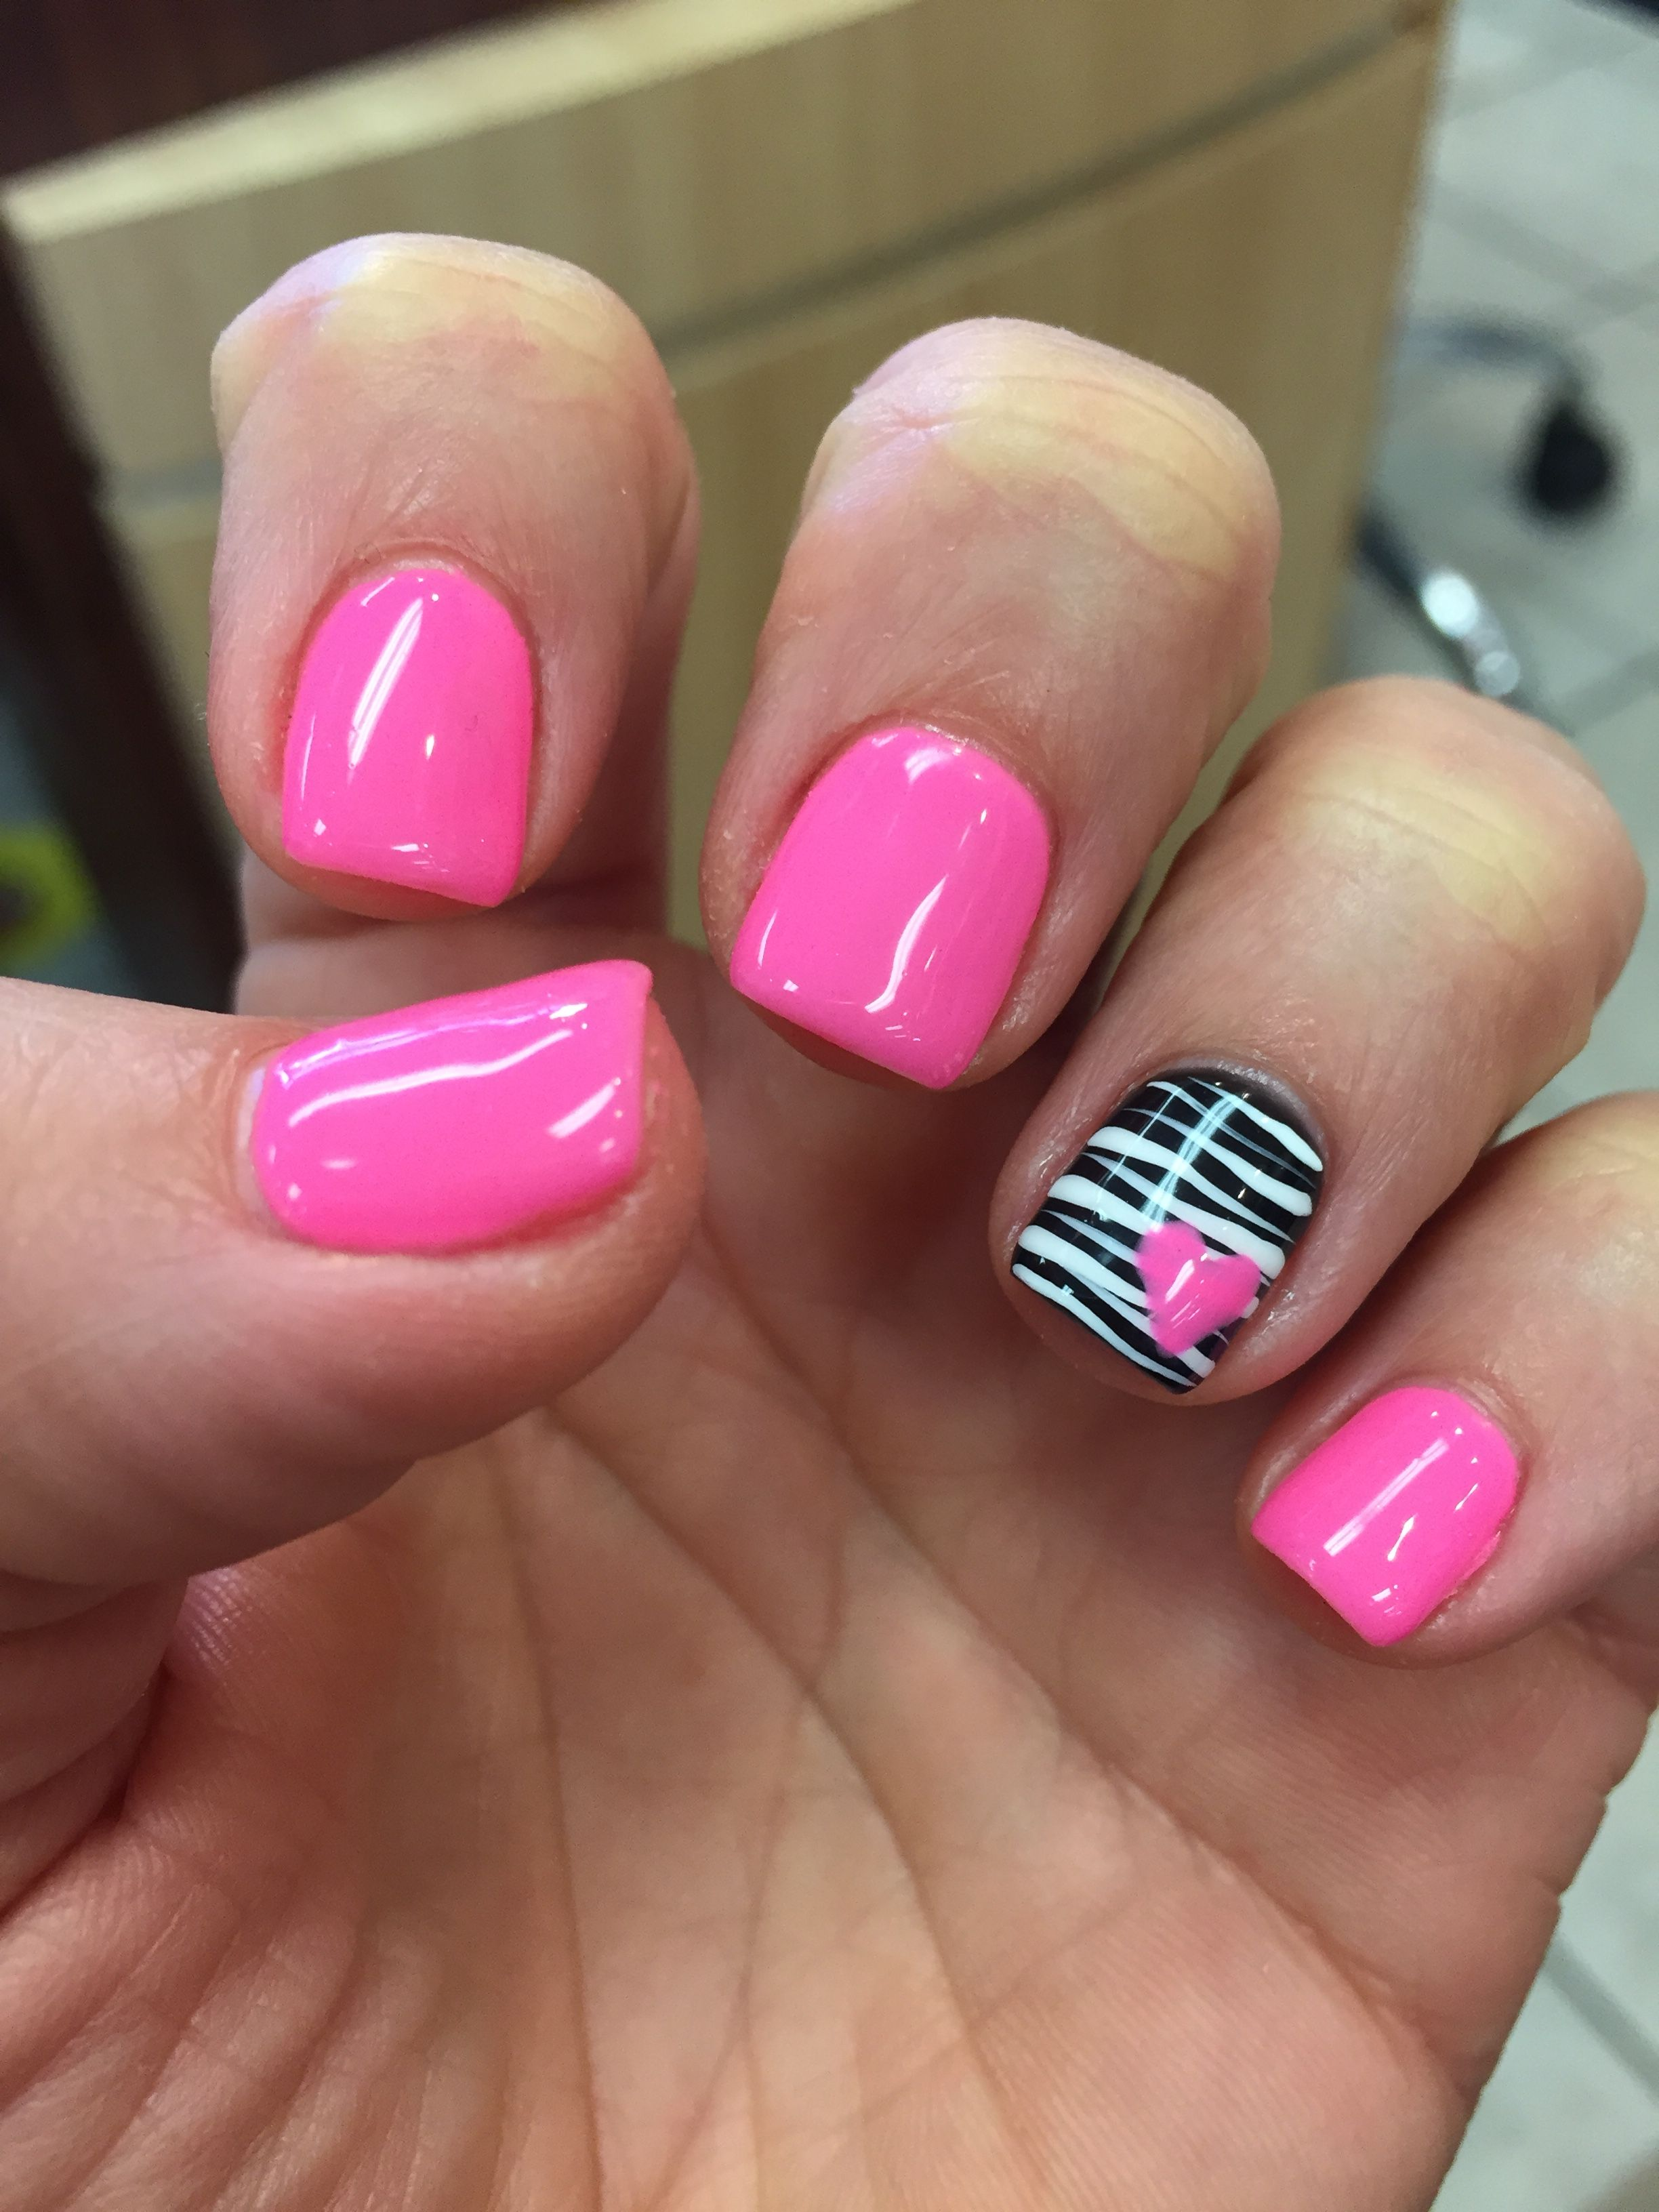 Gel mani shellac zebra pink Valentine nails polish February | Nails ...